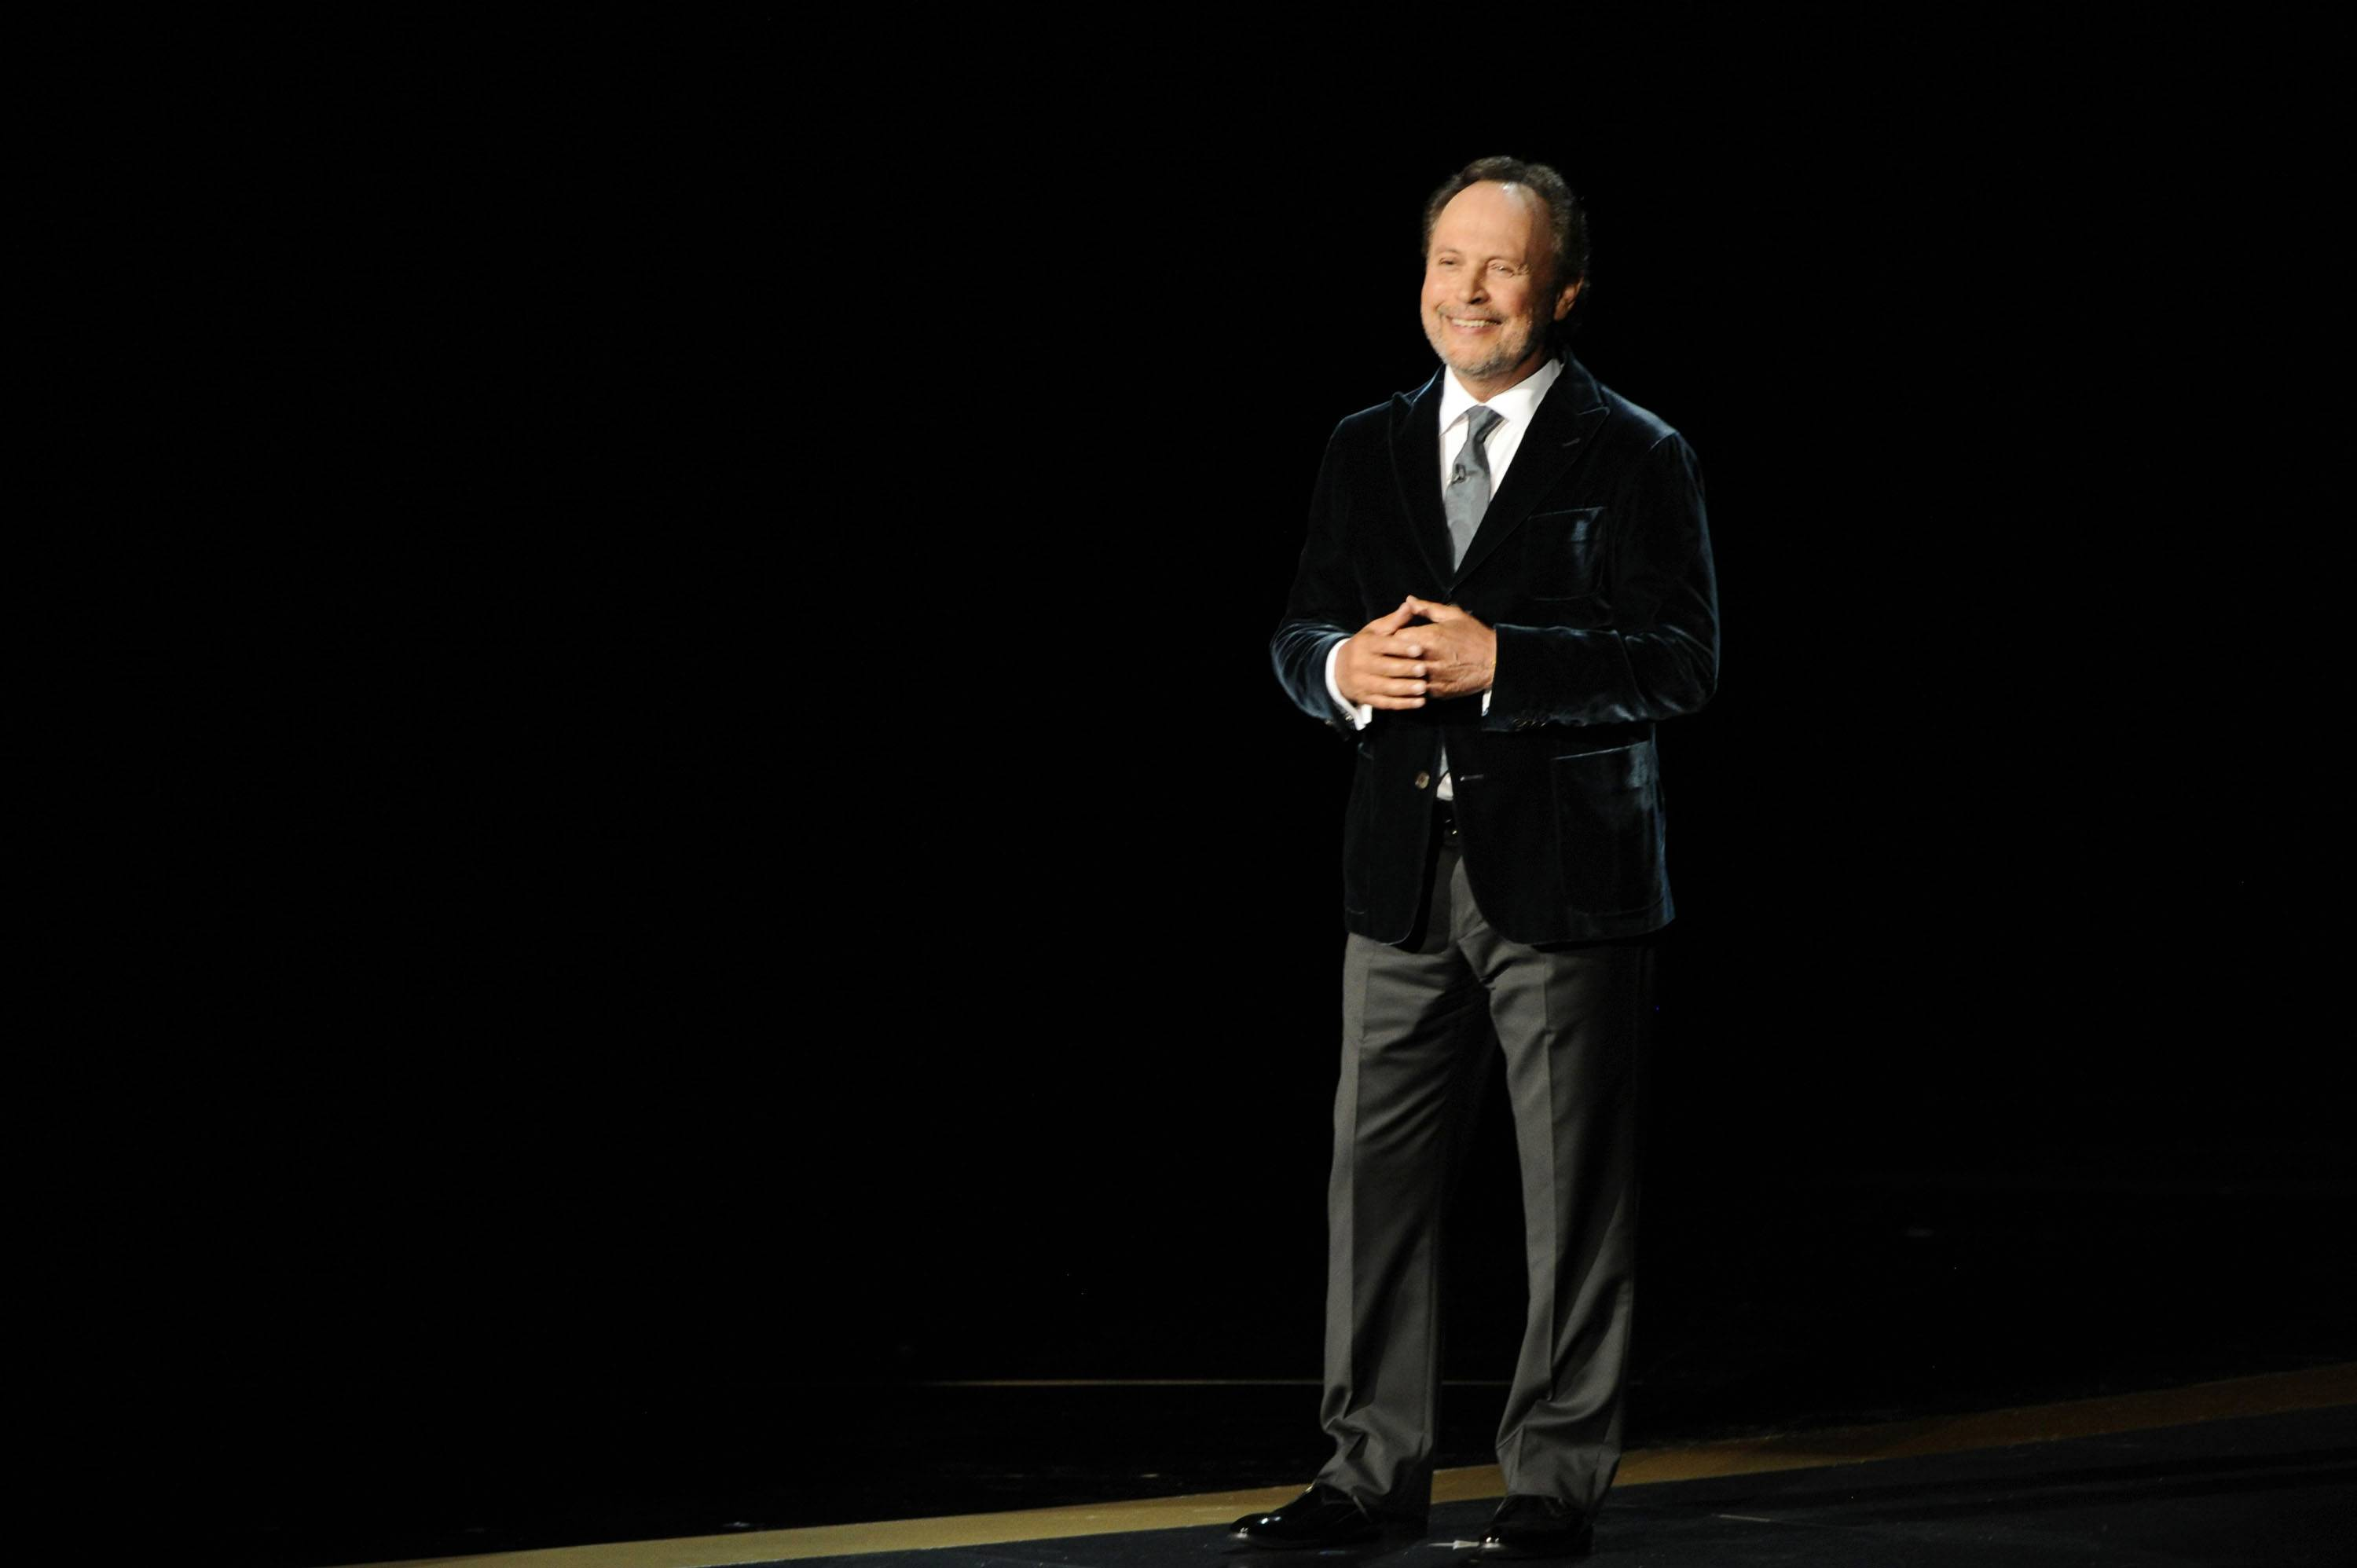 Billy Crystal speaks during an tribute to Robin Williams.